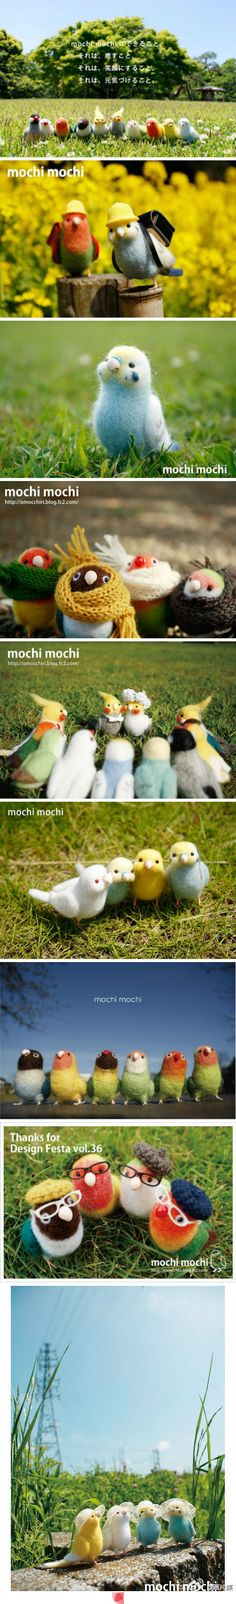 Needle Felted parrots by Mochi Mochi <<< I NEED THESE